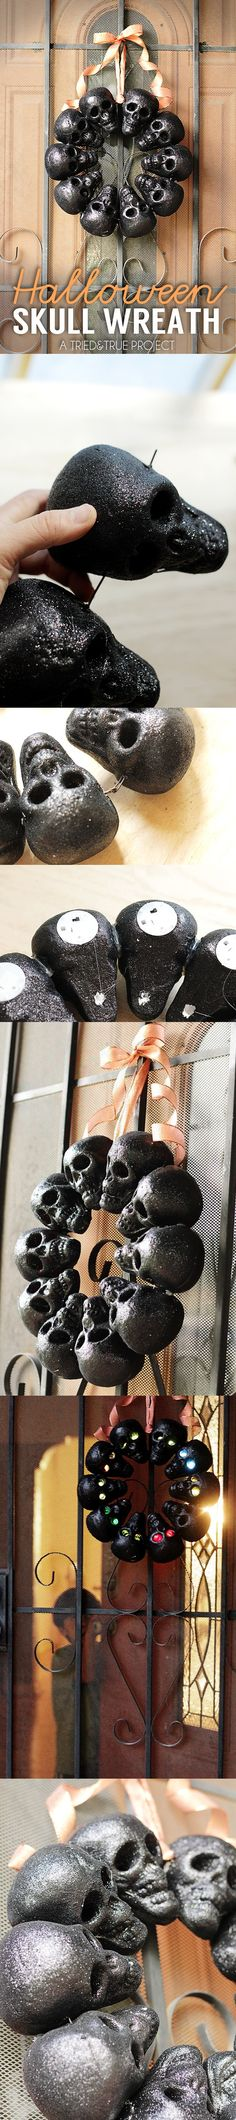 With Halloween just around the corner, we thought it's about time we take look into creepy crafts, such as these DIY Skull projects. These DIY skull ideas will be great for decorating your home or giving your October outfits that touch of horror! Halloween School Treats, Halloween Party Supplies, Halloween Home Decor, Halloween 2017, Diy Halloween Decorations, Holidays Halloween, Easy Halloween, Halloween Crafts, Halloween Wreaths